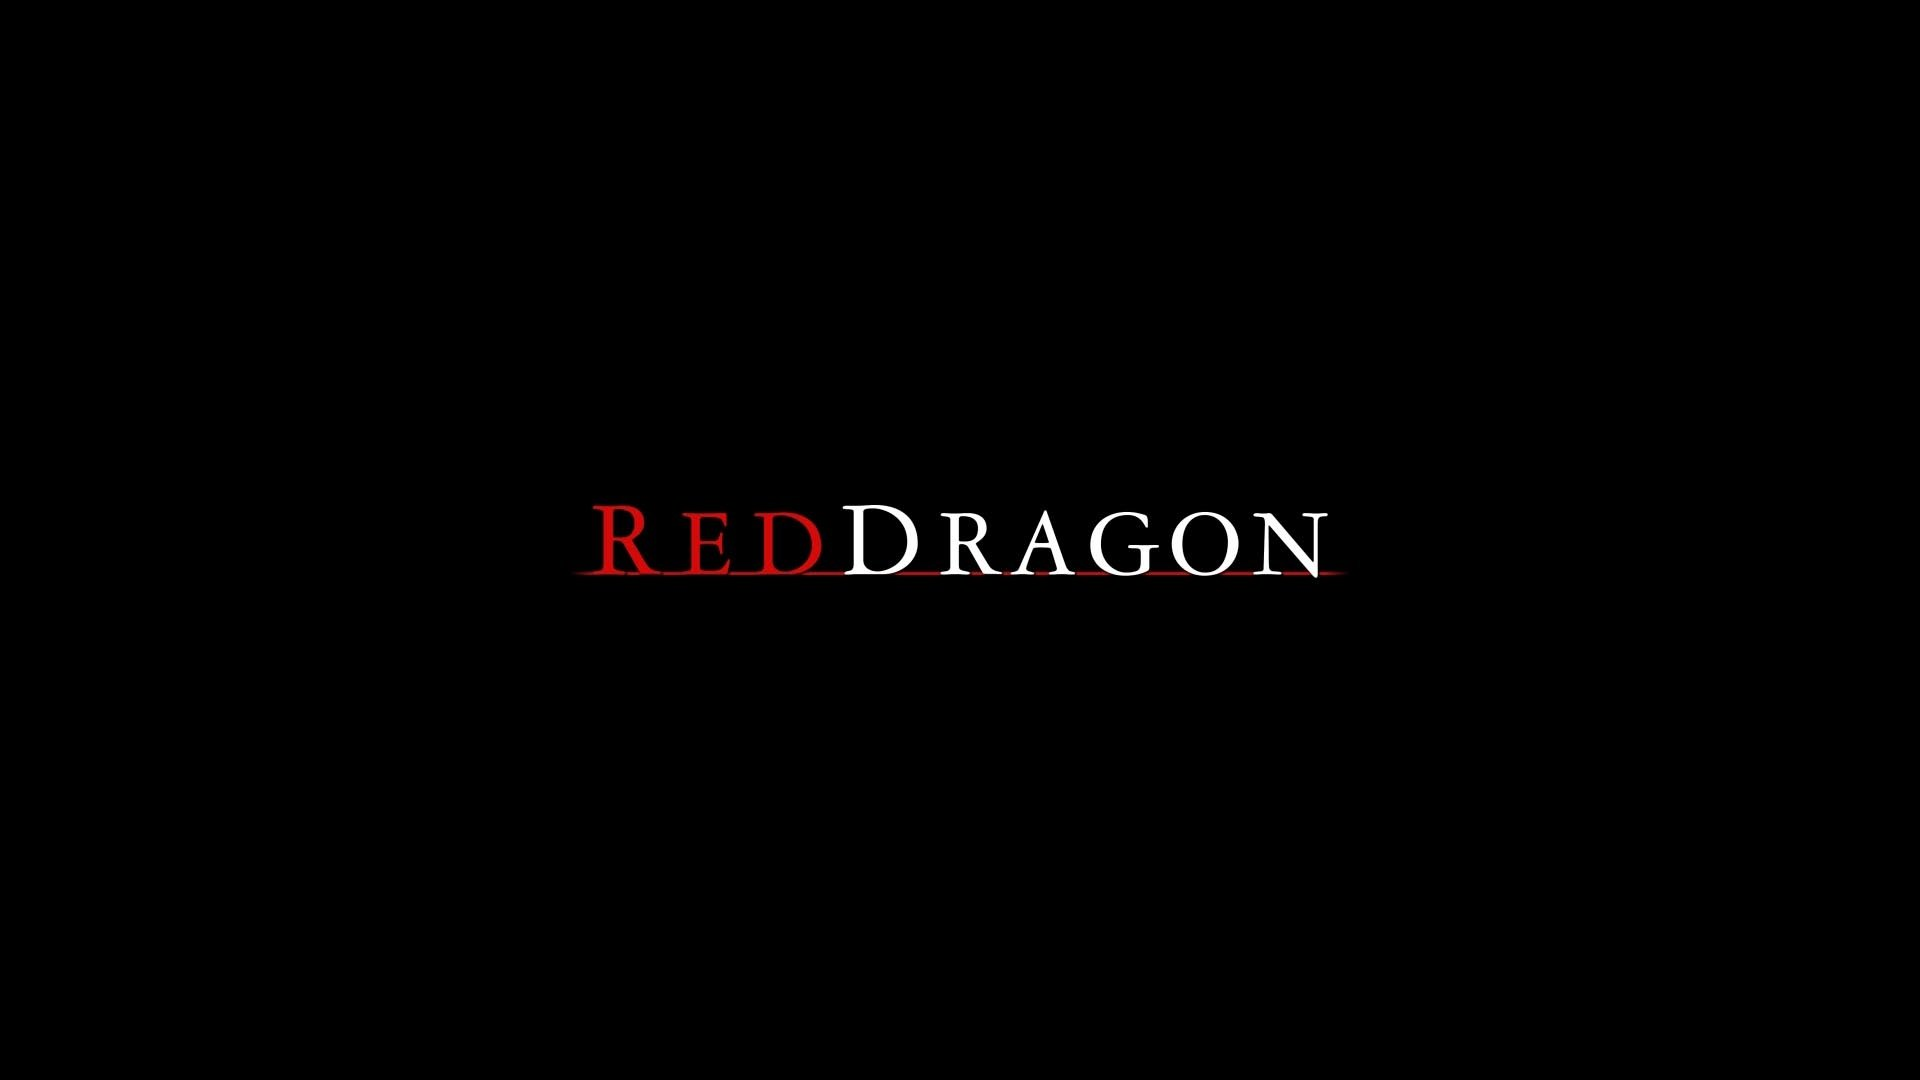 Red Dragon Hd Wallpaper Background Image 1920x1080 Id 523466